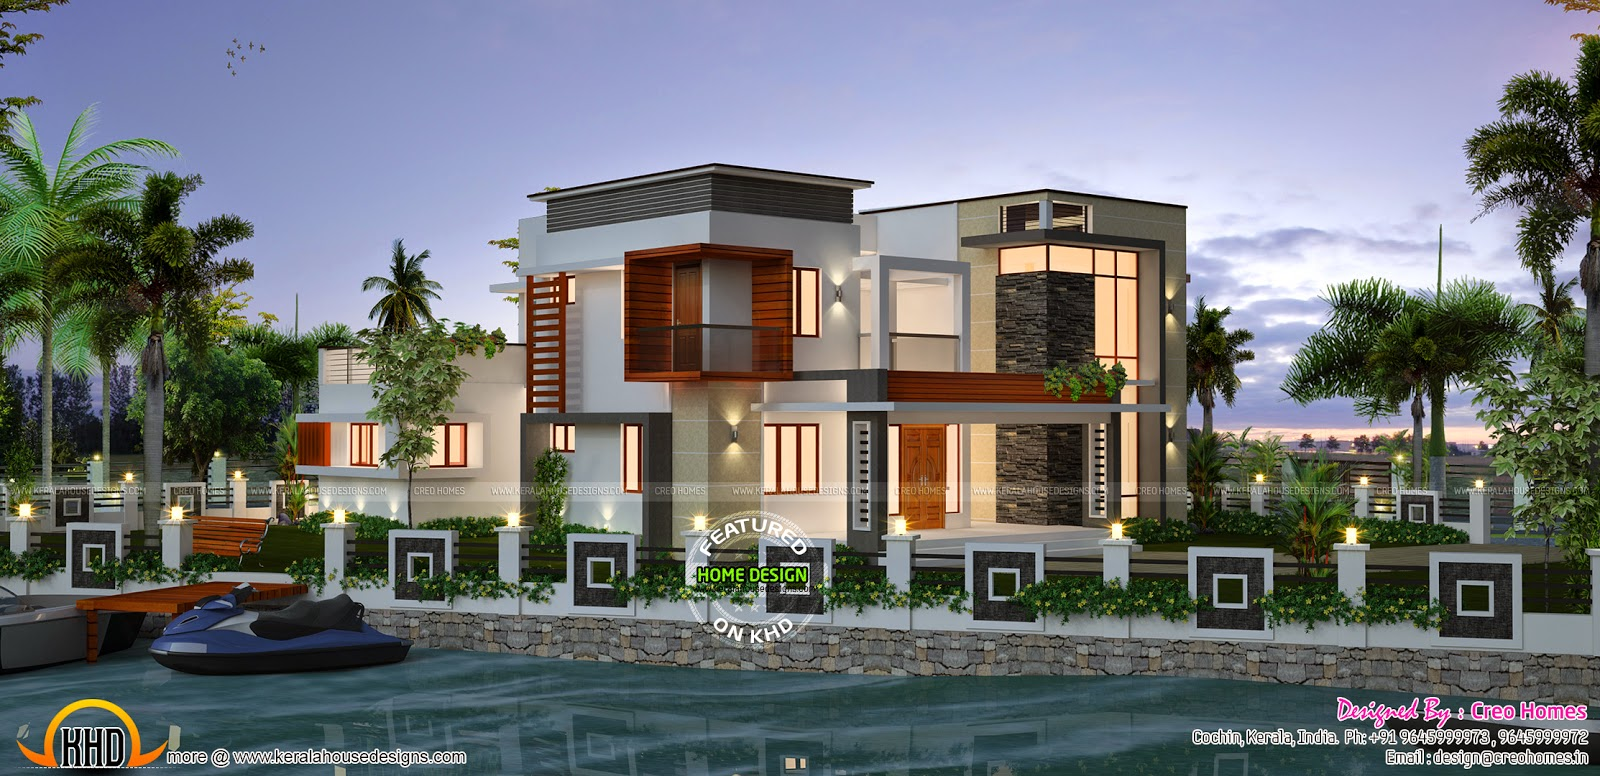 Waterfront house design kerala home design and floor plans for Waterfront home designs